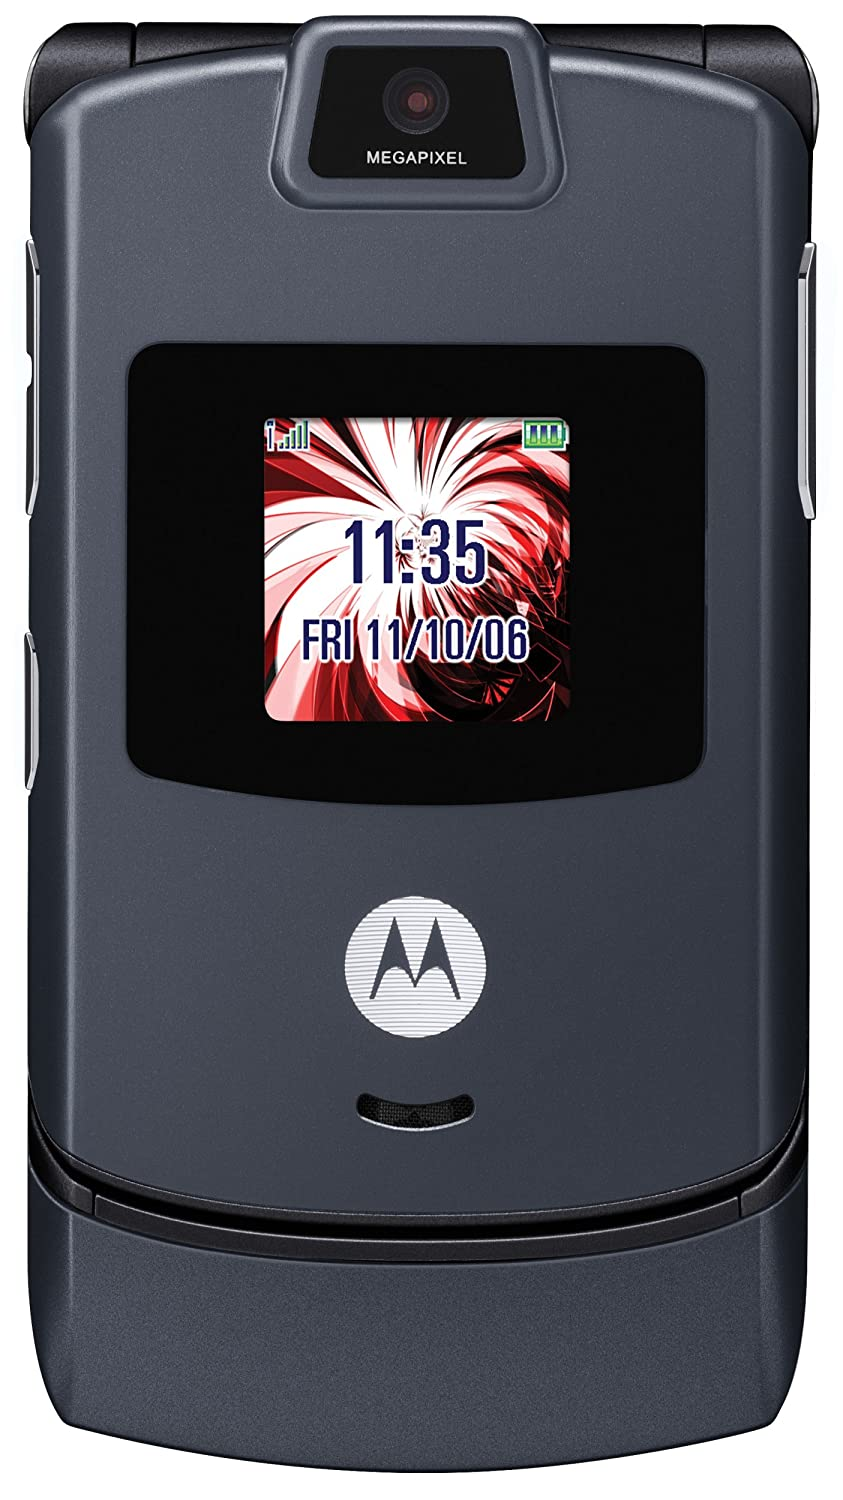 Amazon.com: Motorola RAZR V3 Pearl Gray Phone (T-Mobile): Cell Phones &  Accessories